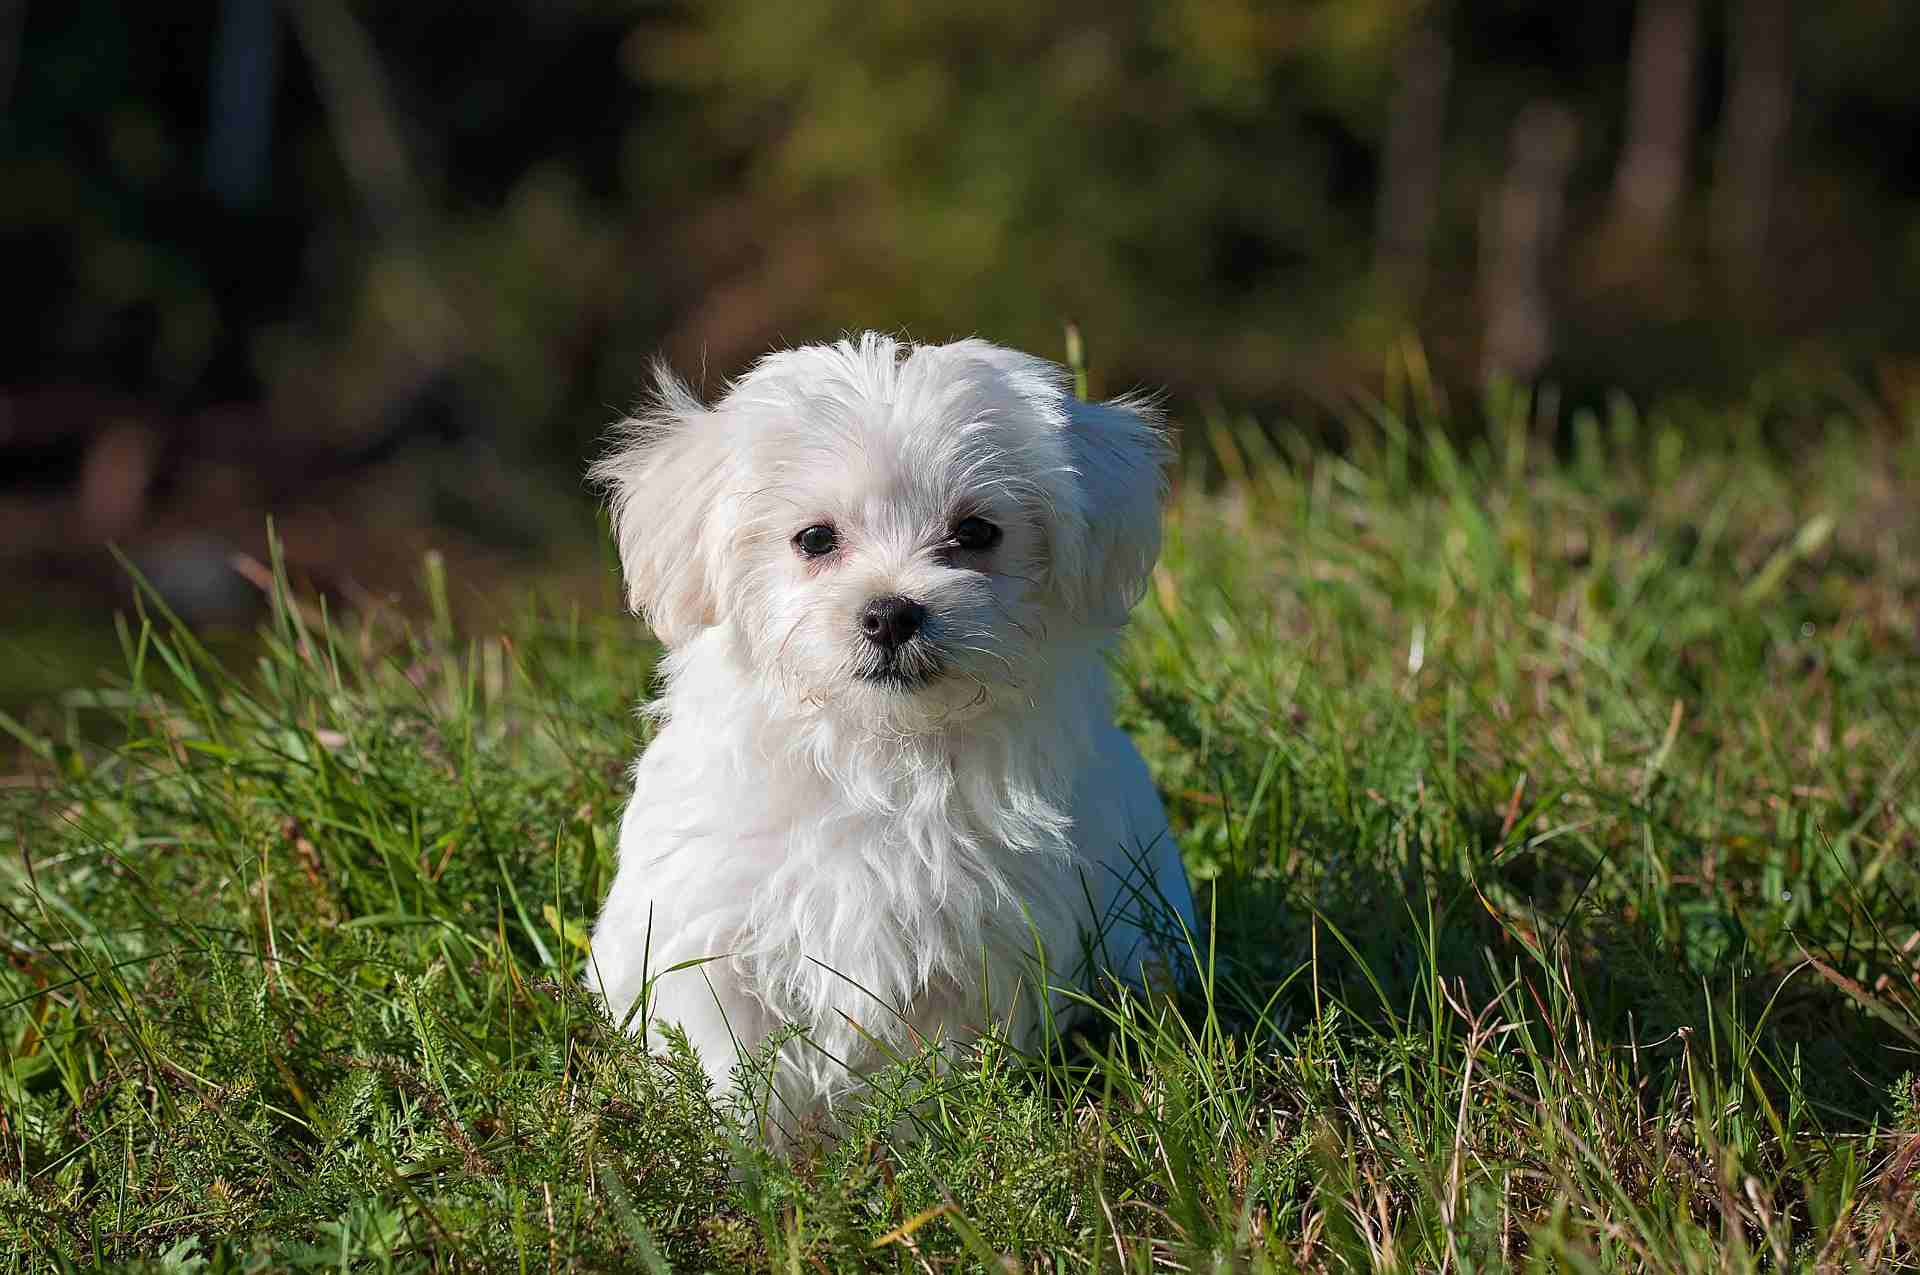 A Maltese puppy sitting in the grass.